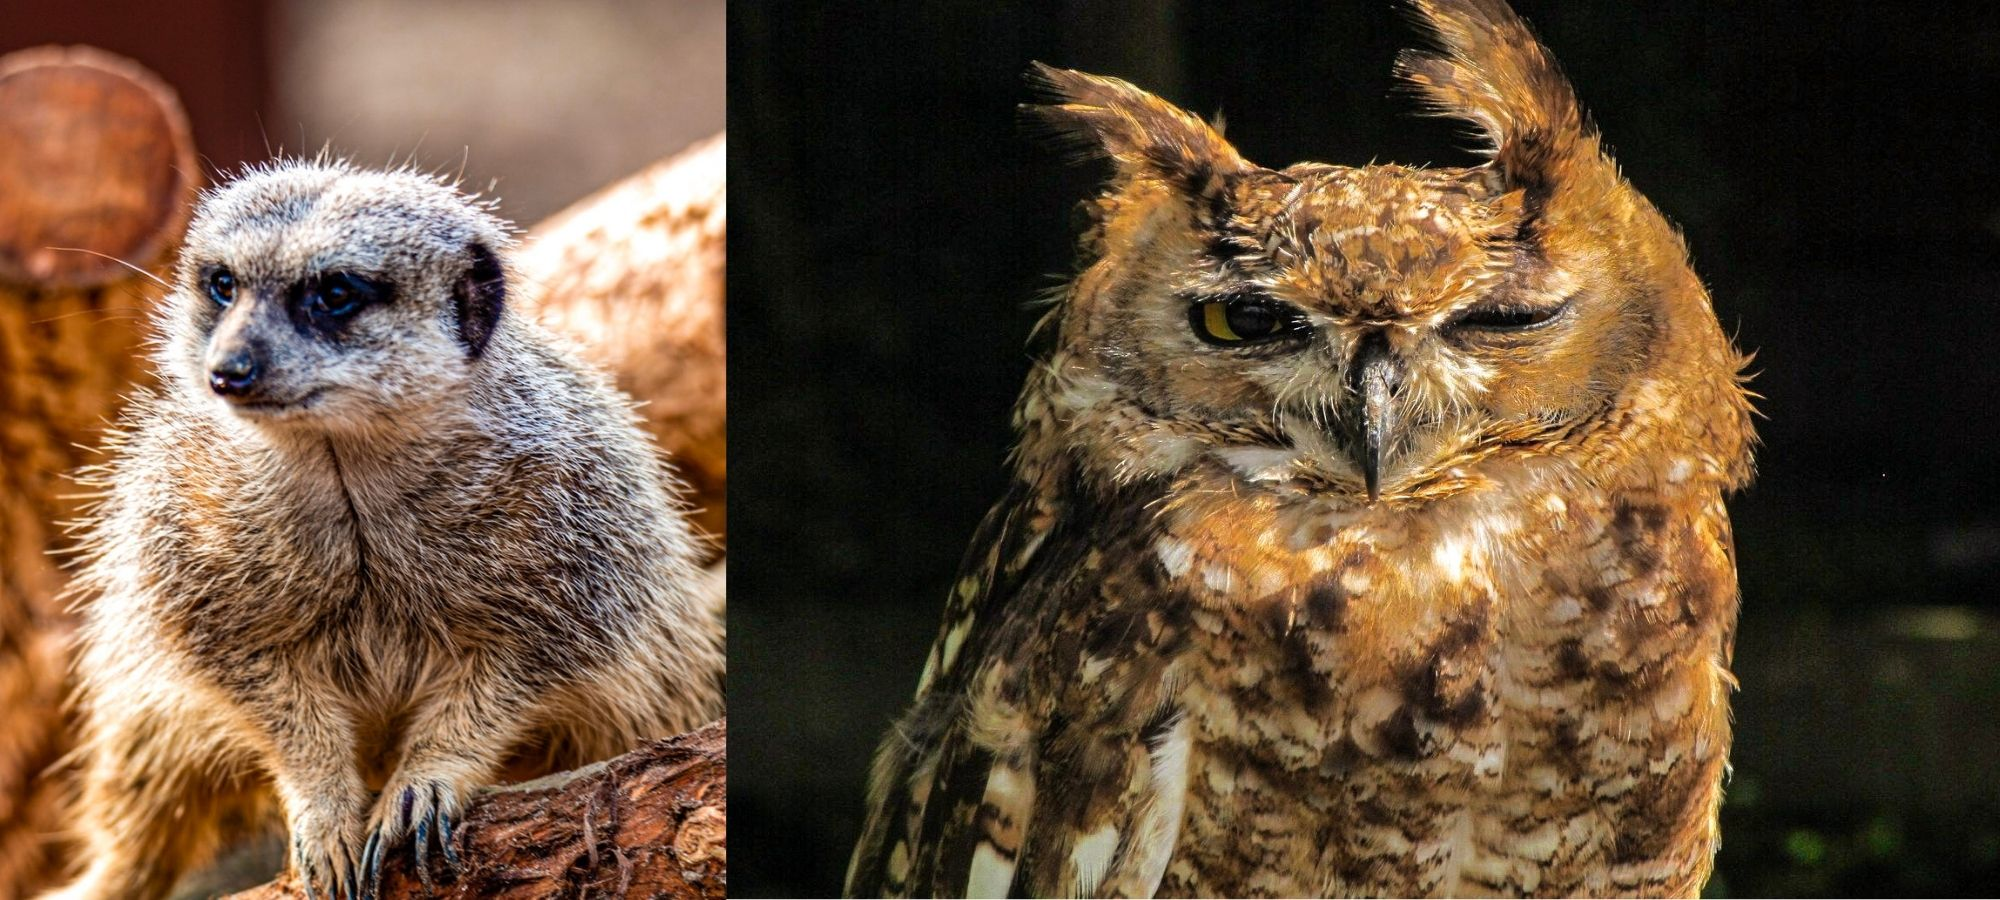 Left: meerkat perched on a log. Right: brown owl both at an animal sanctuary